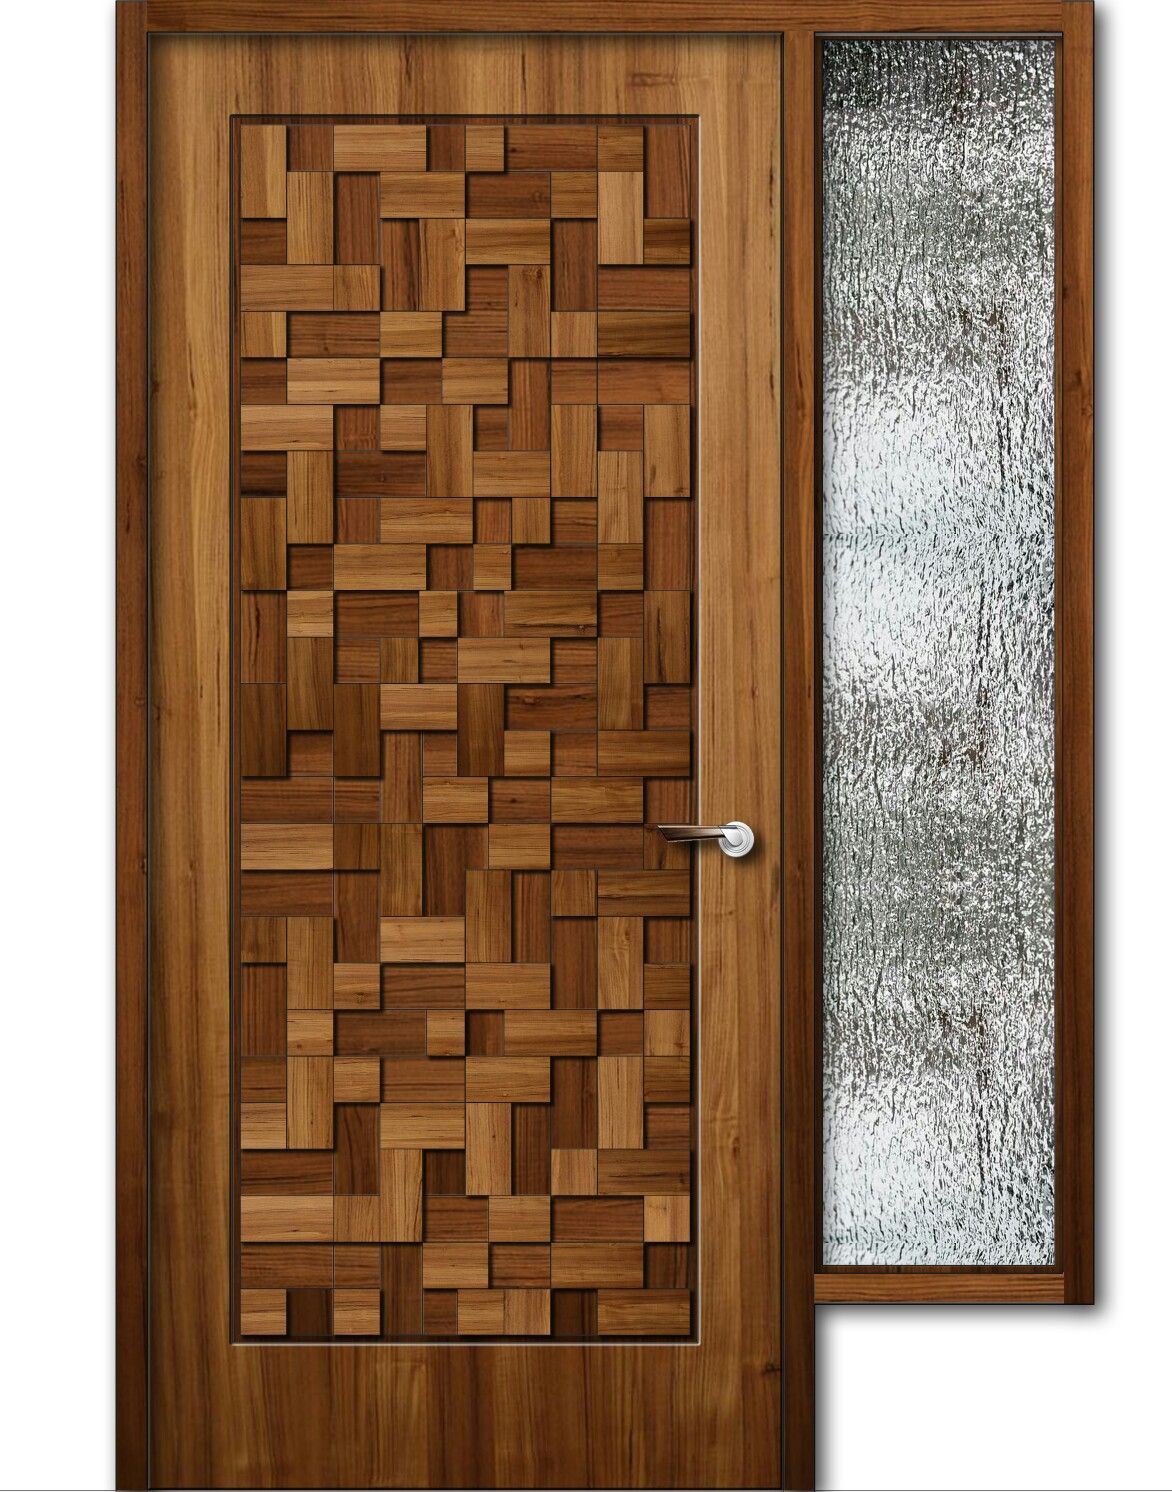 Teak wood finish wooden door with window 8feet height for Wooden window design with glass